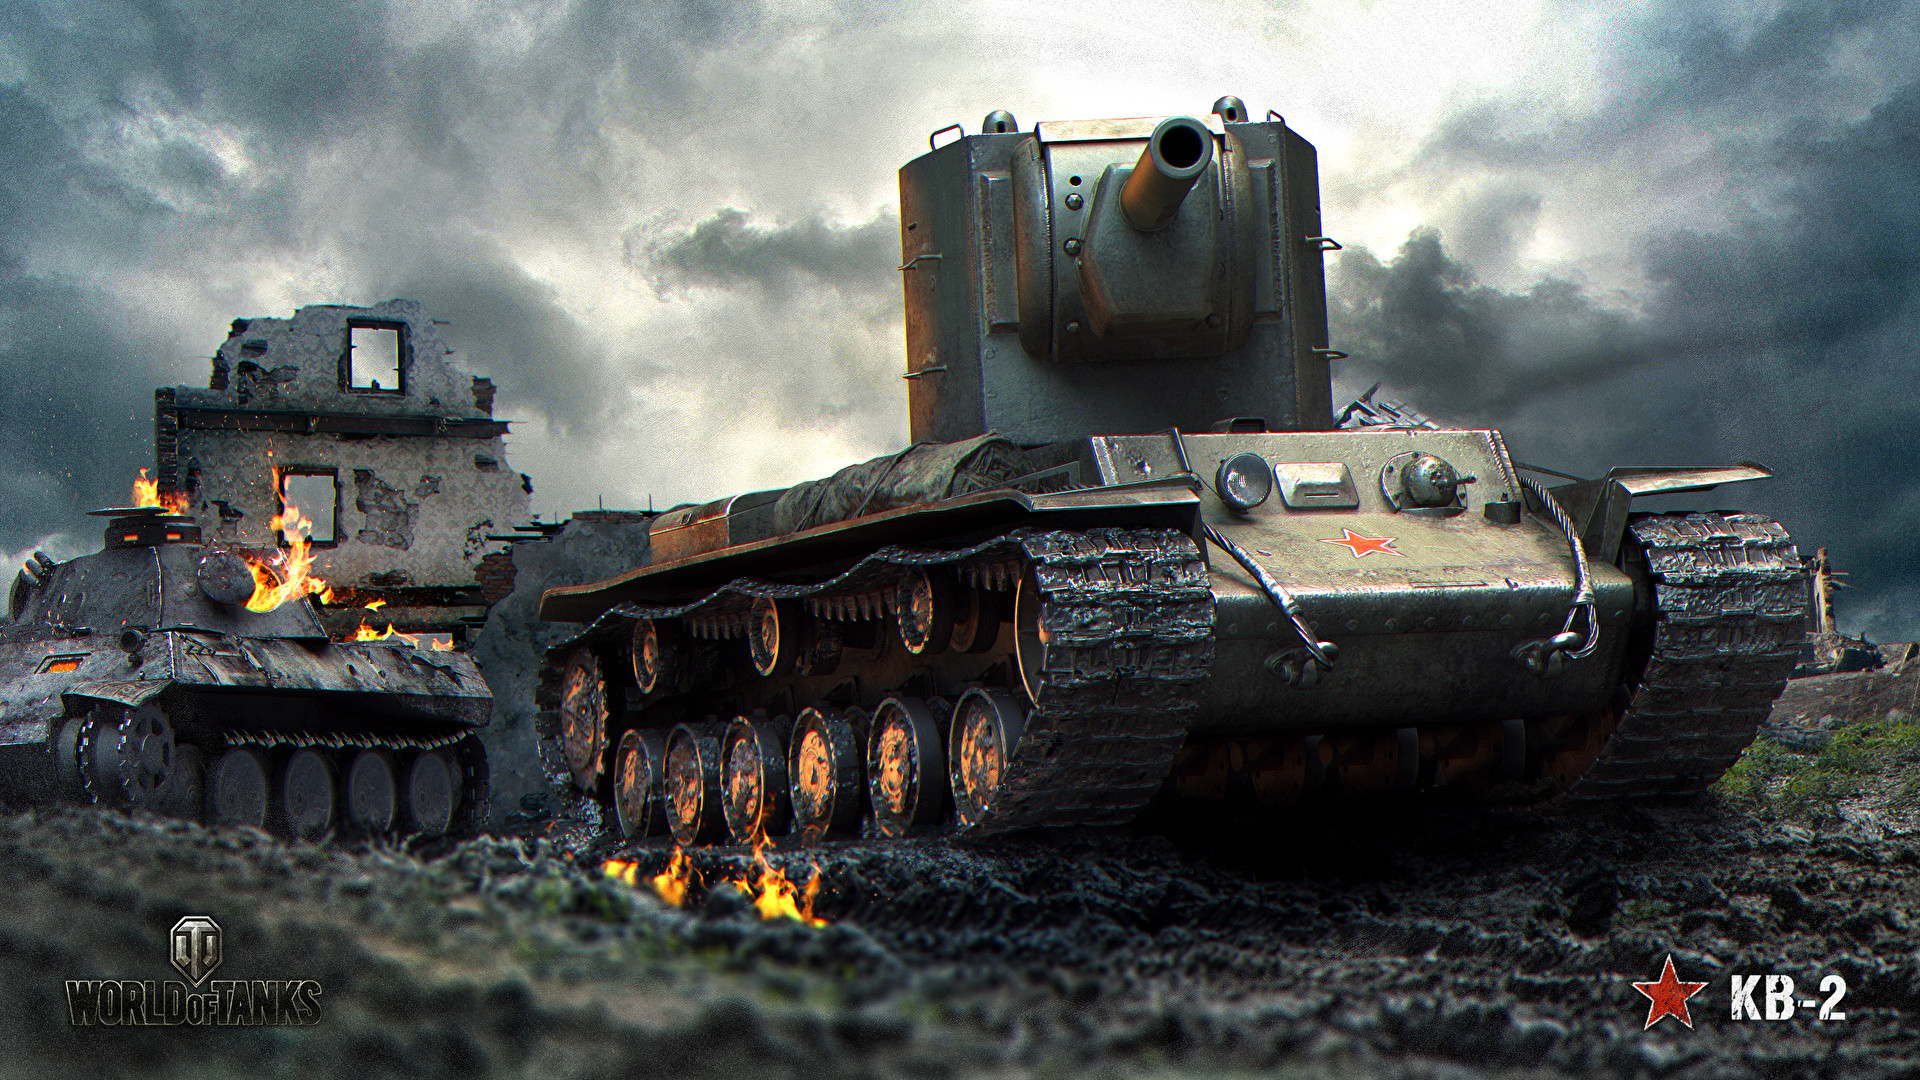 World of Tanks Wallpaper 1920x1080 (85+ images)